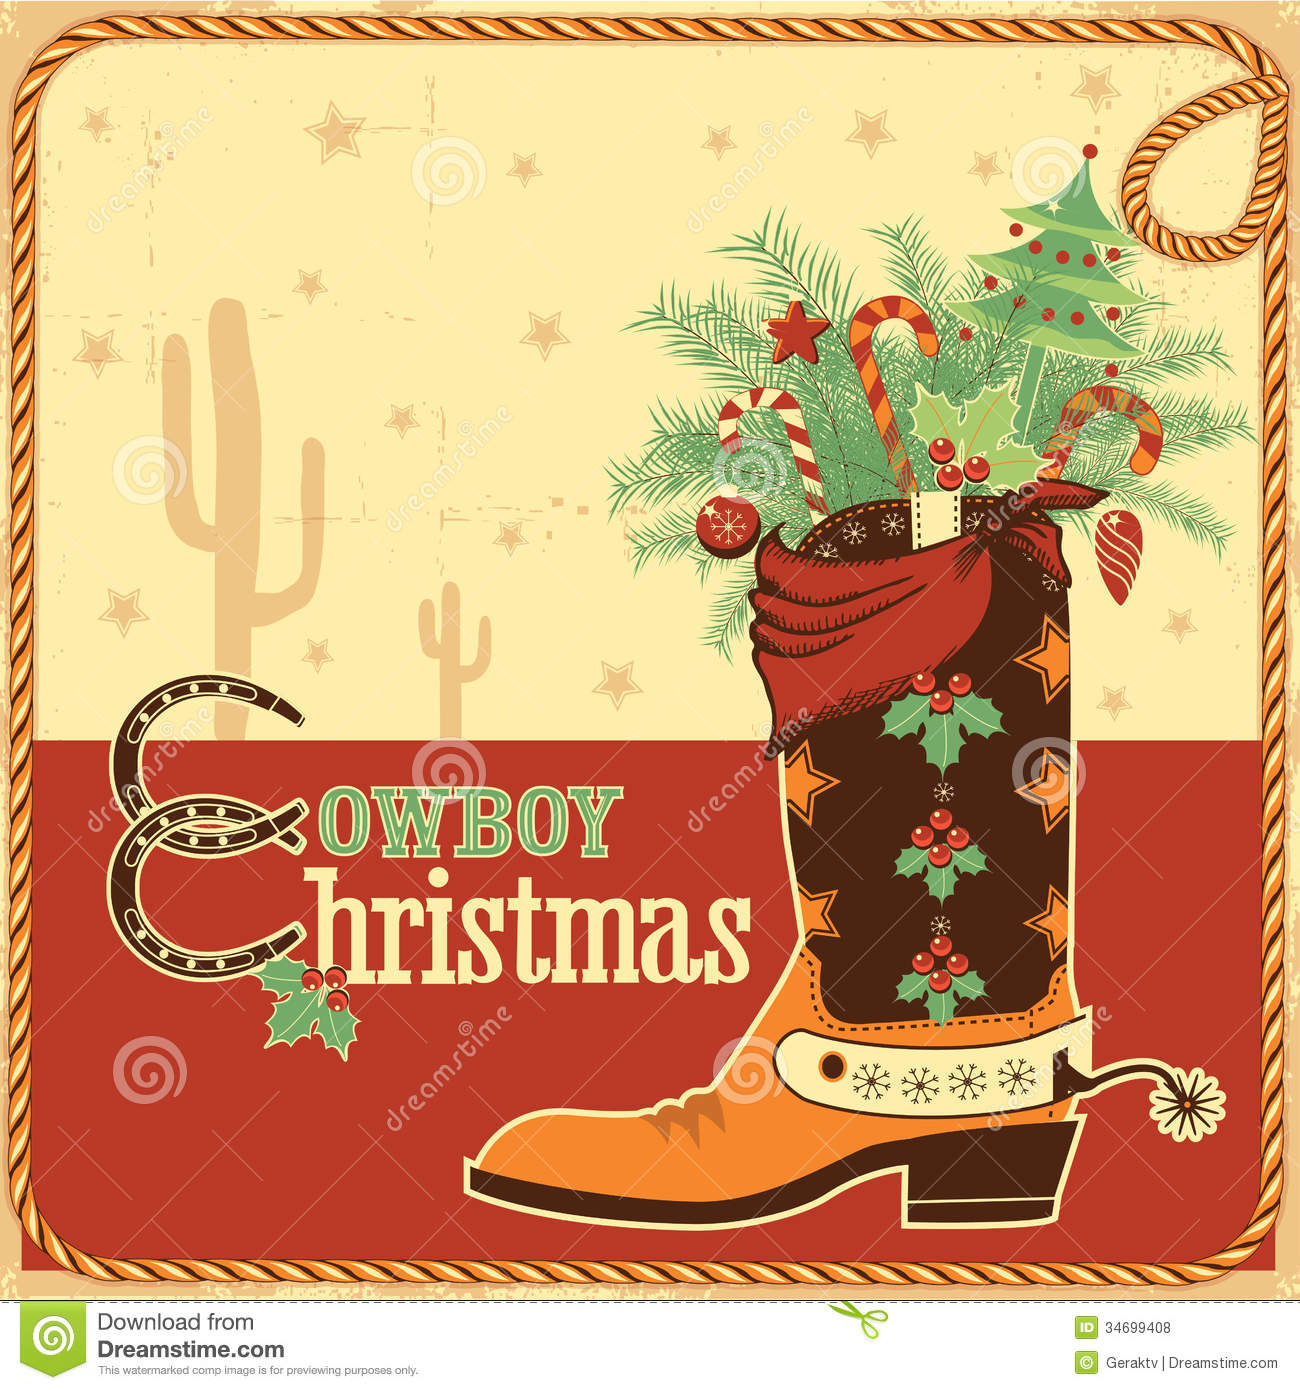 Cowboy Christmas Card With Text And Boot Stock Vector - Illustration ...